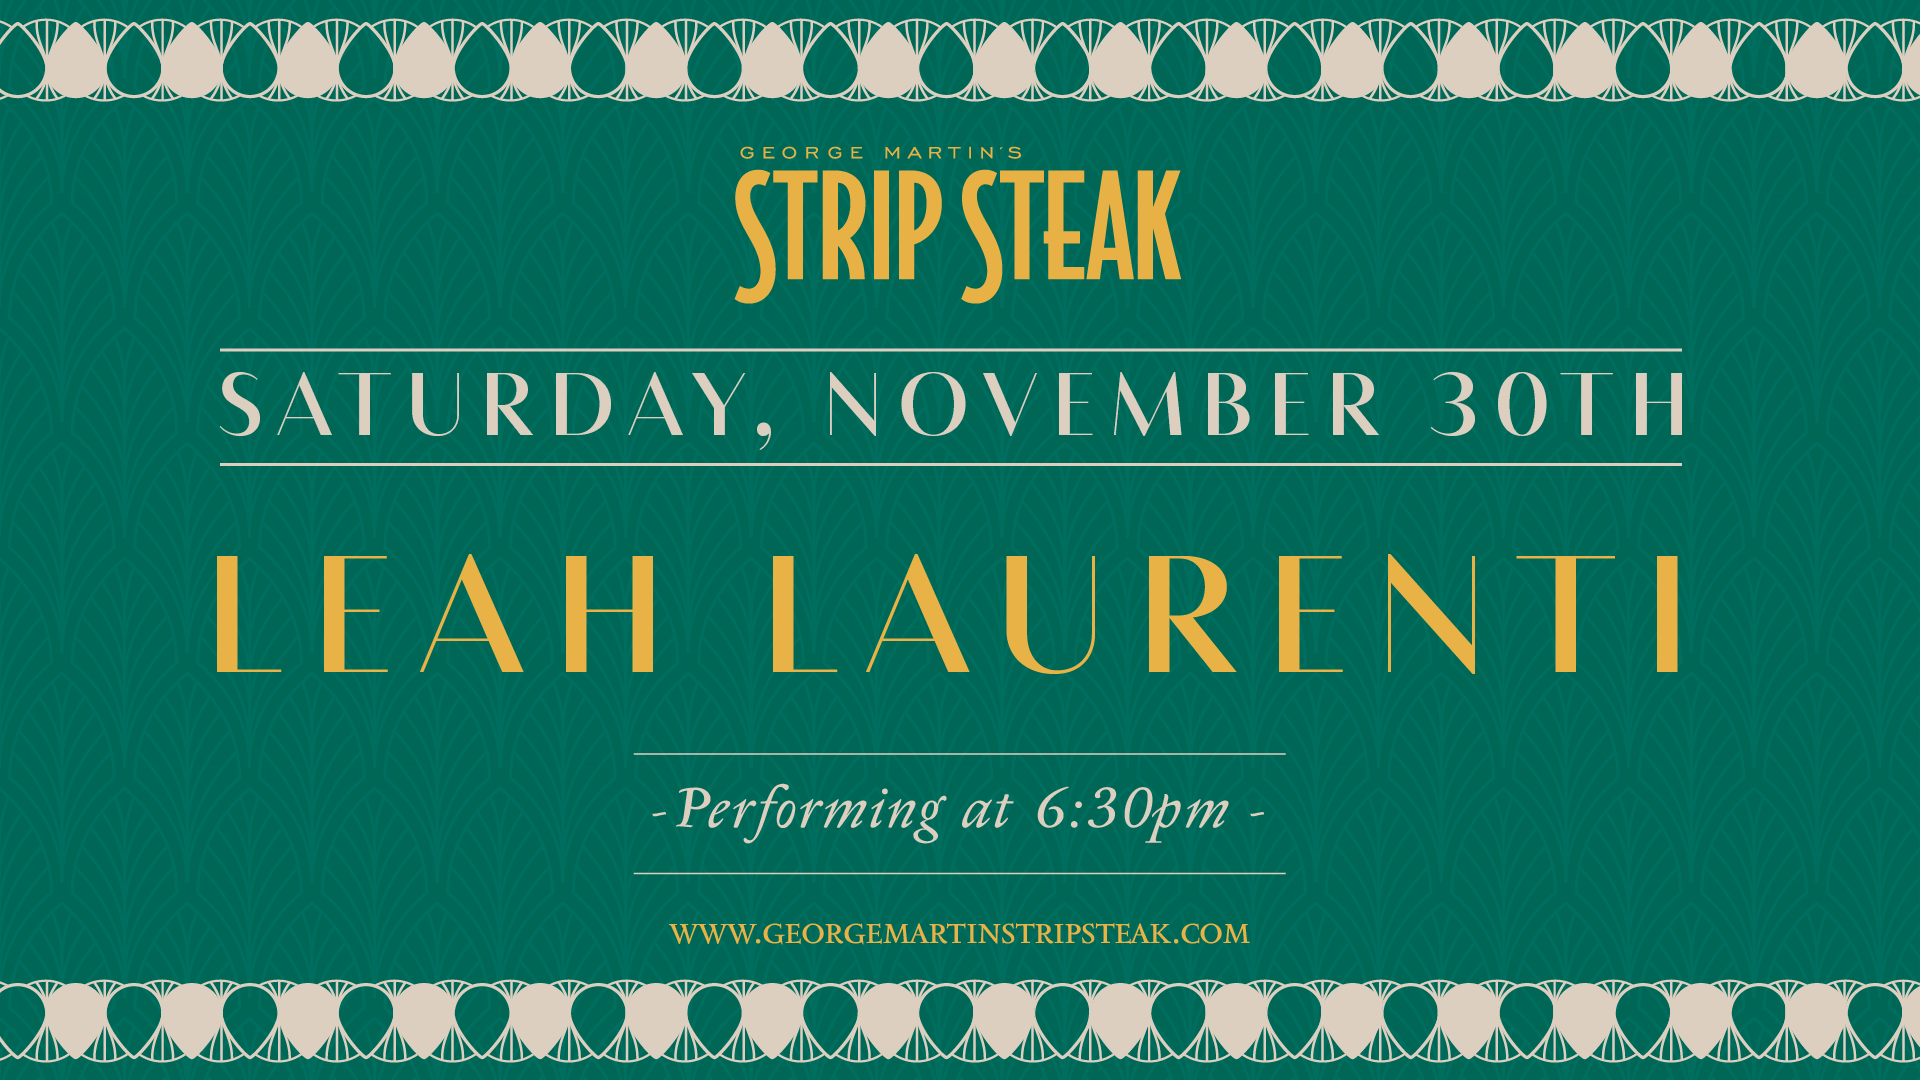 Flyer for Saturday, November 30th with Leah Laurenti performing at 6:30pm.